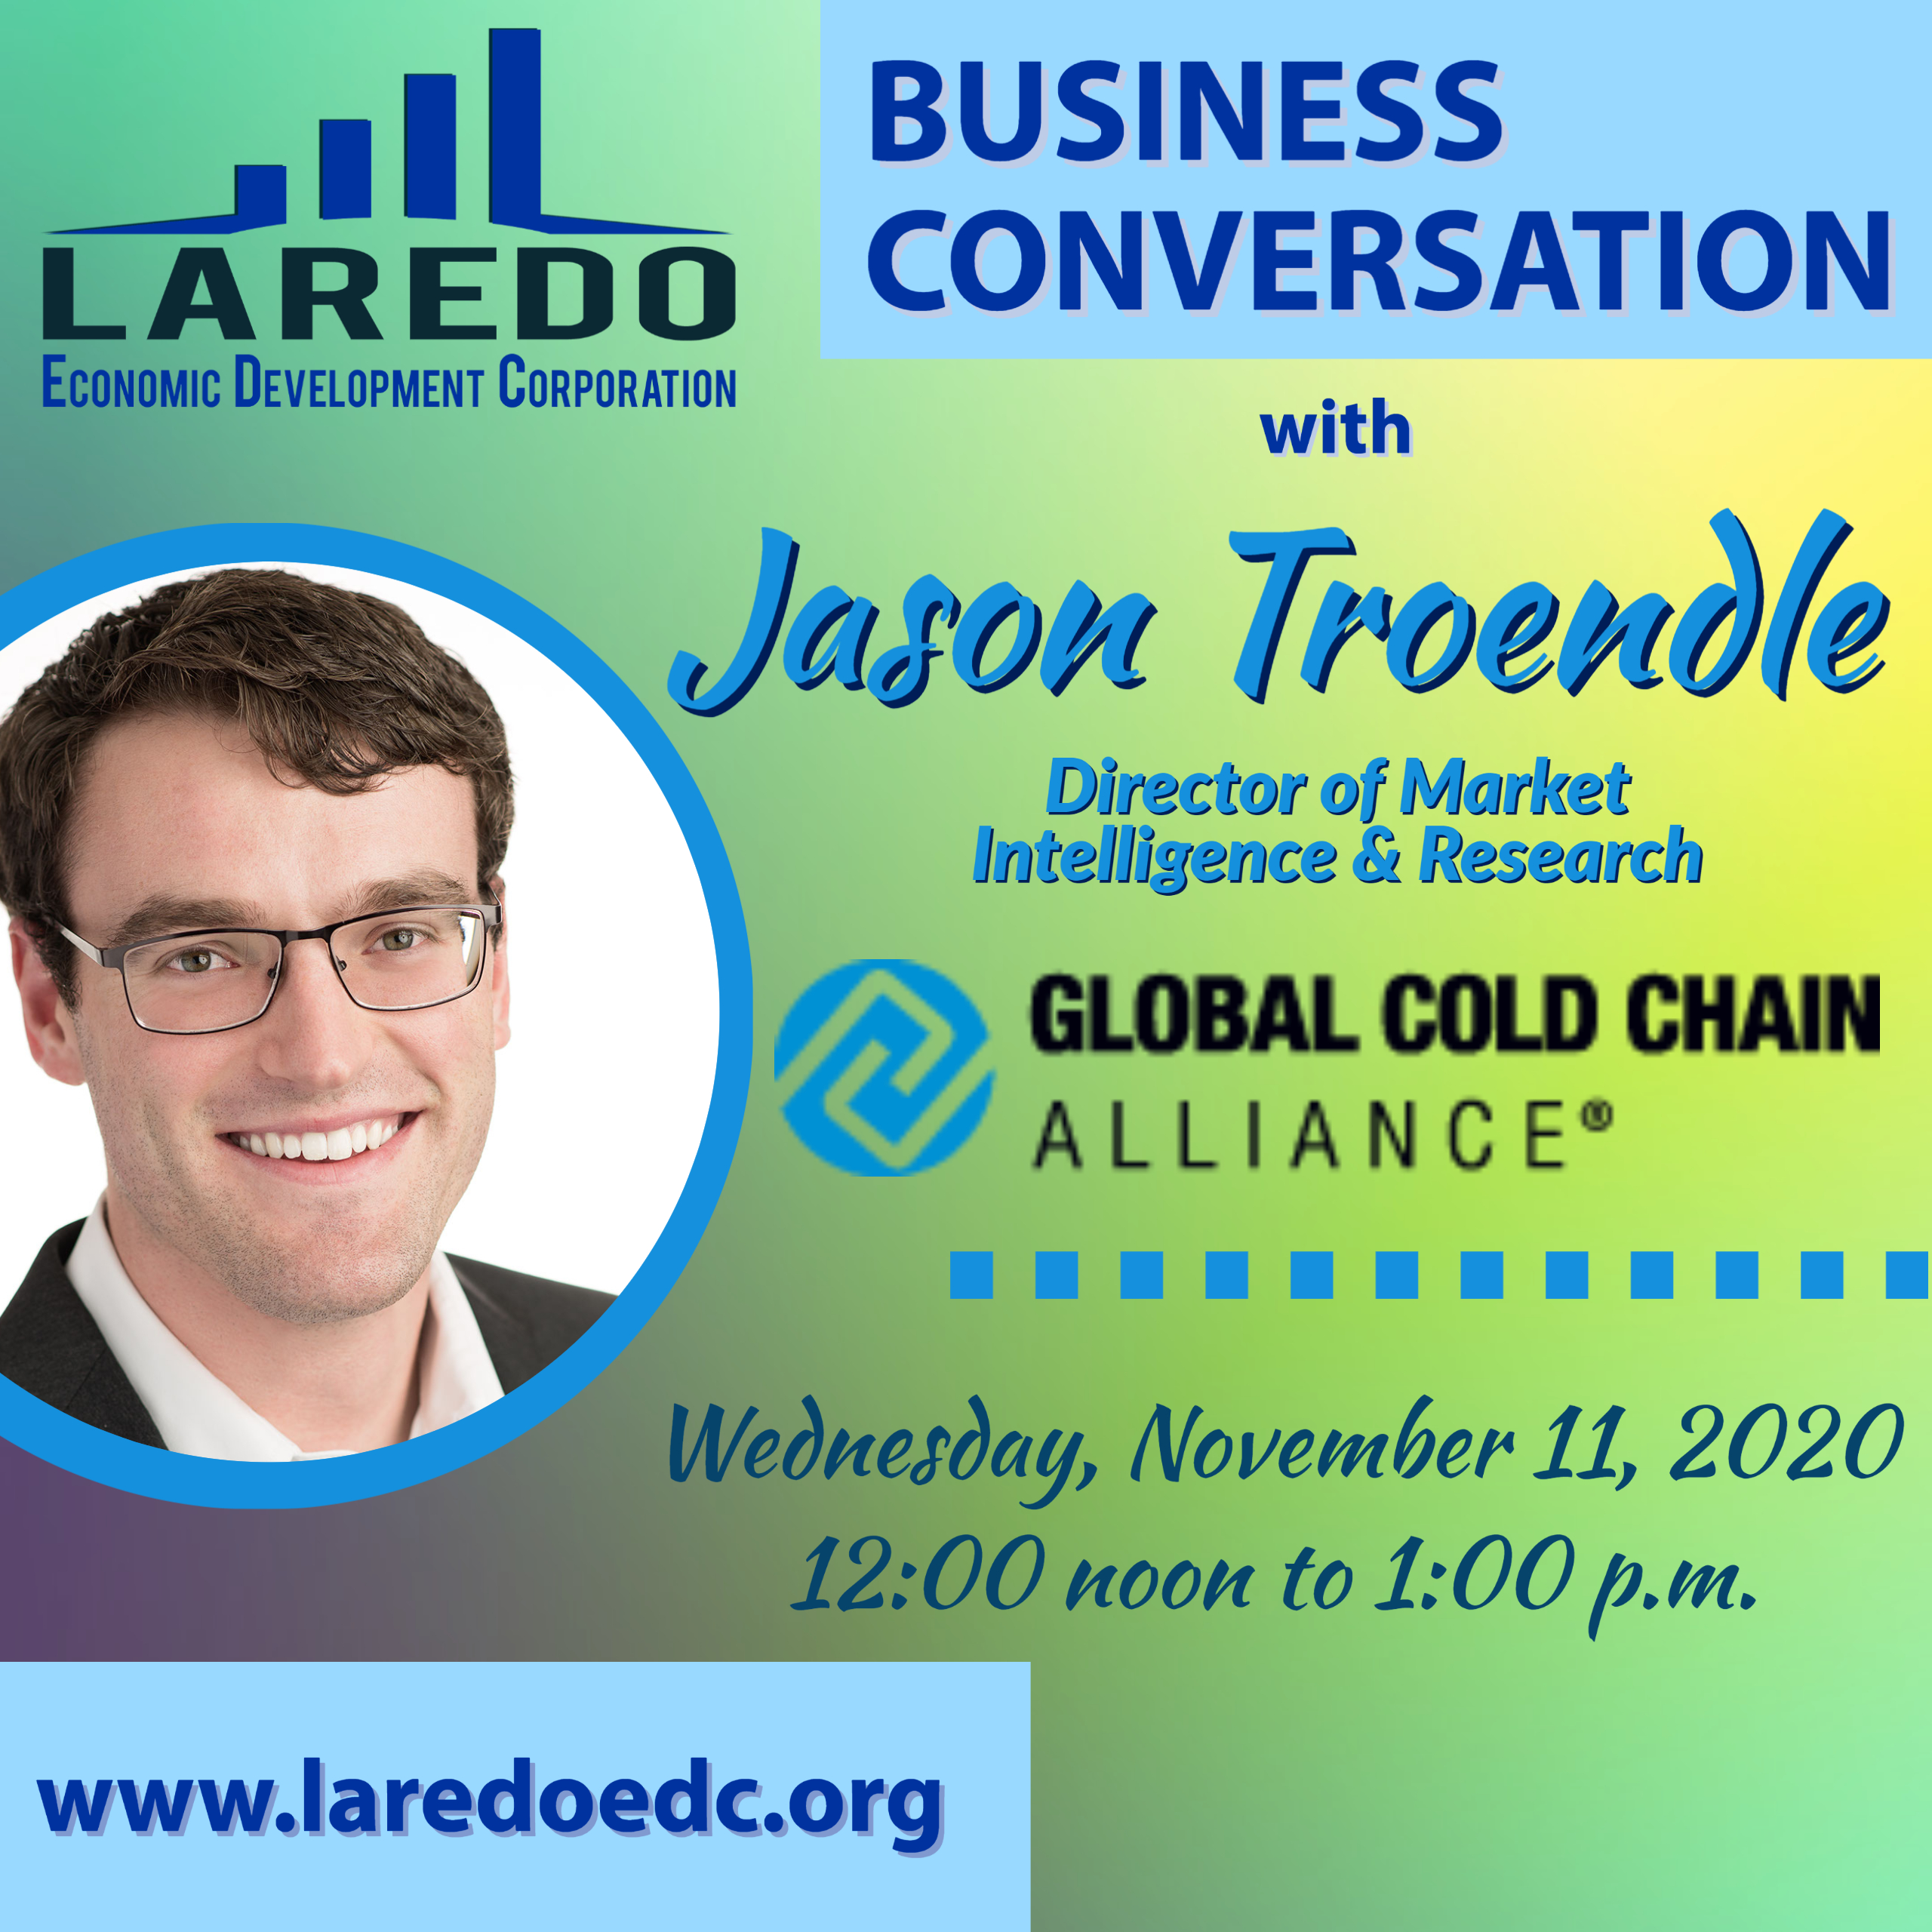 LEDC Business Conversation Meeting with Jason Troendle